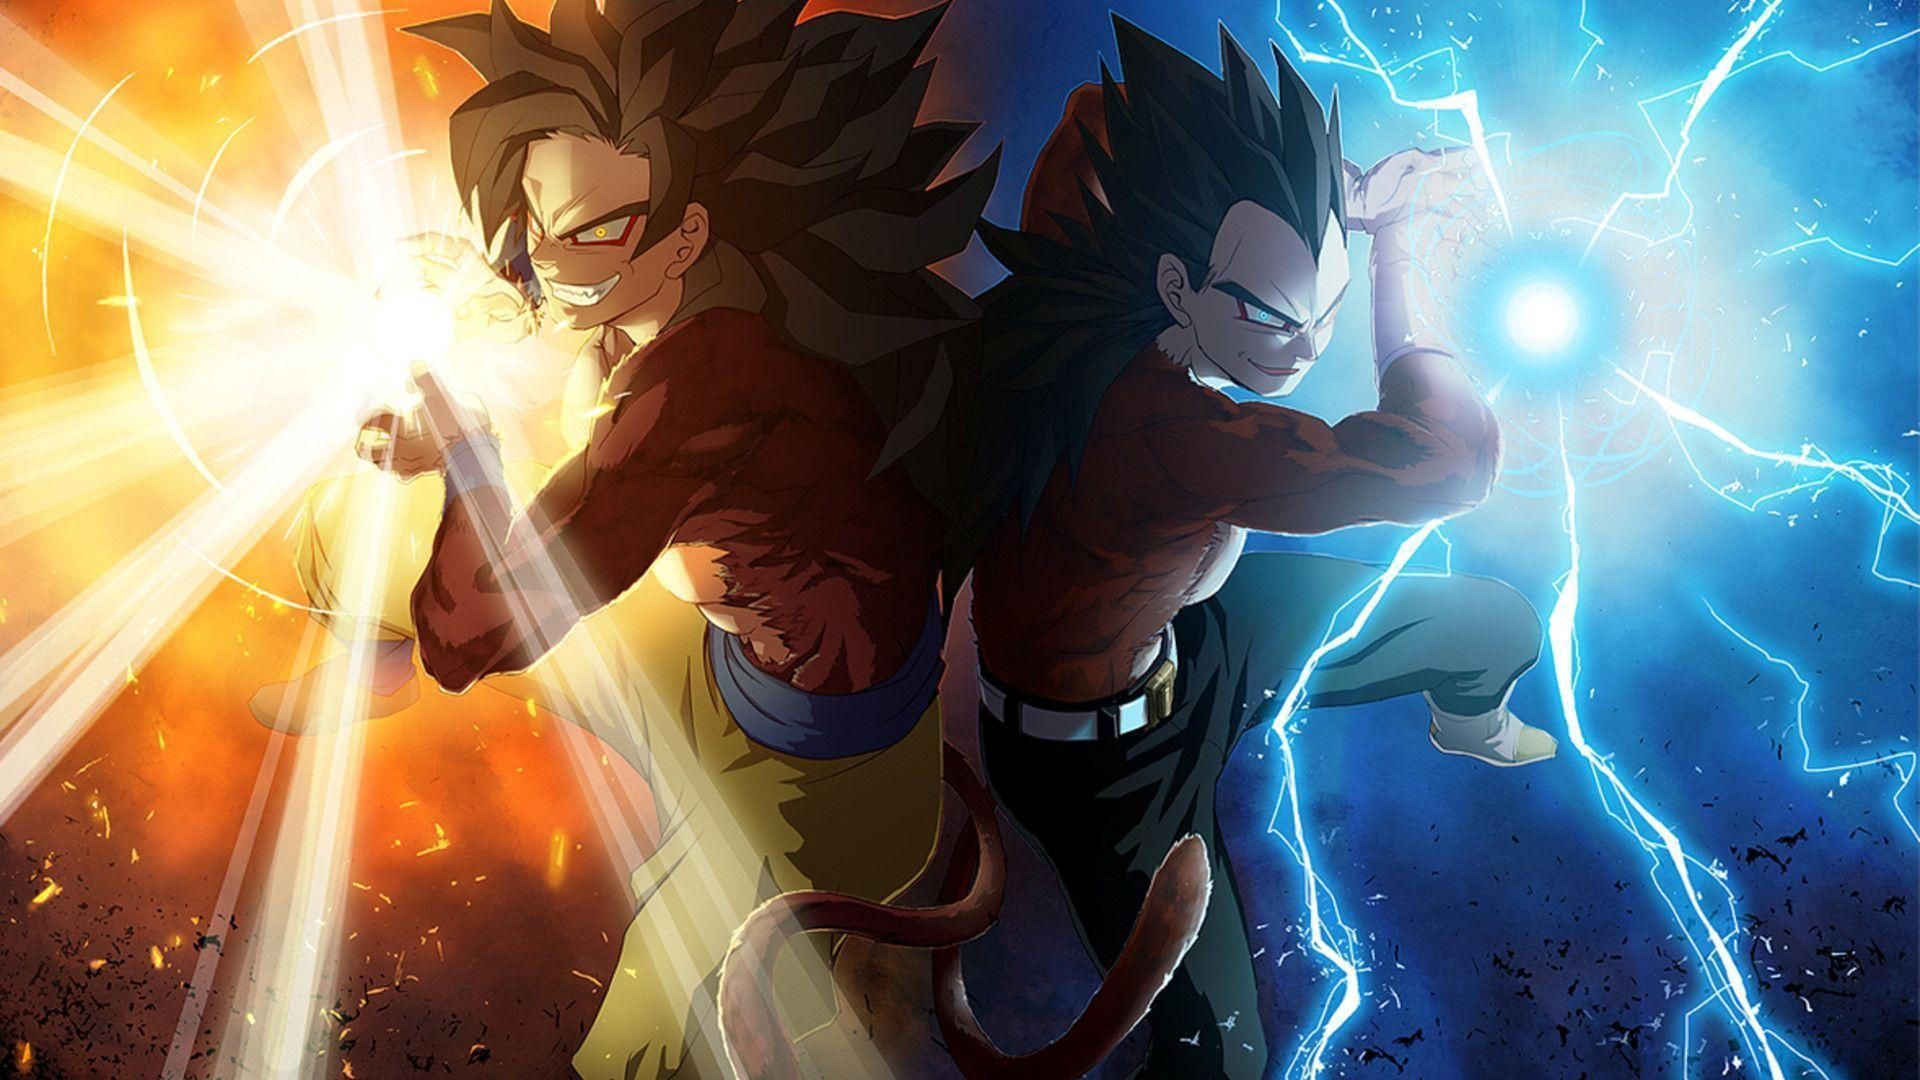 Free Download Dragon Ball Z Hd Wallpapers 1920x1080 For Your